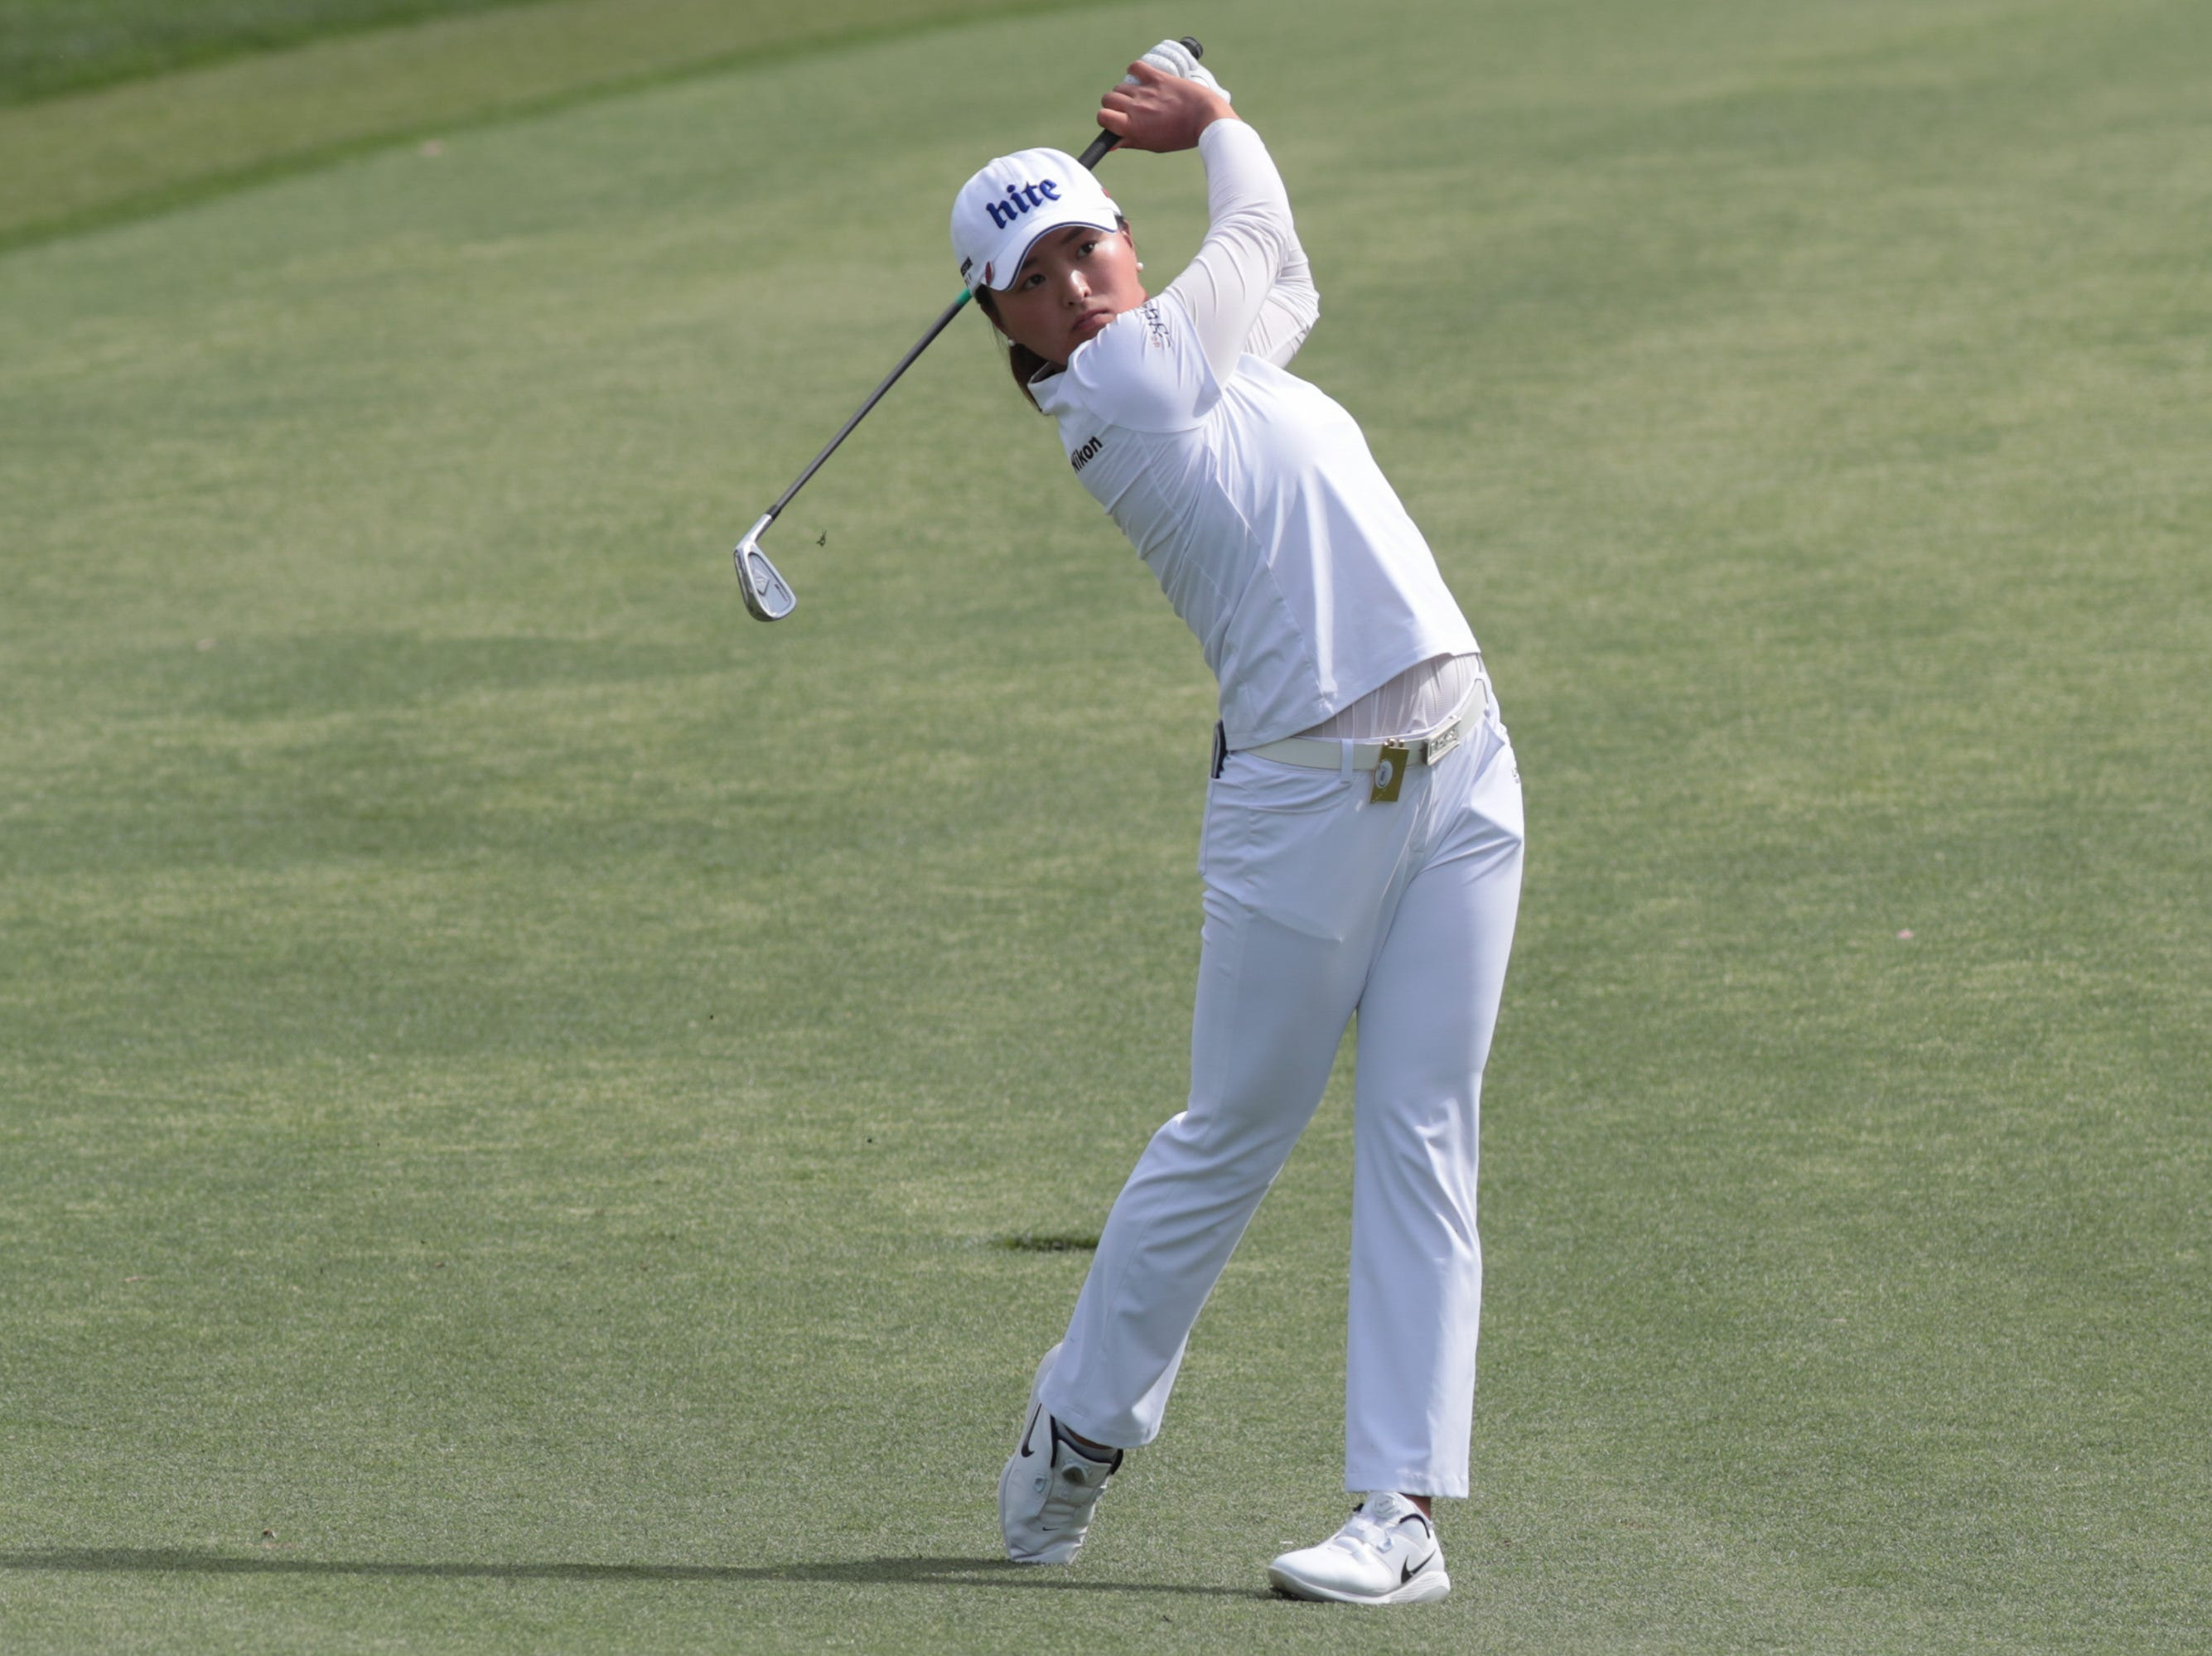 Jin Young Ko plays on the Dinah Shore Course at the ANA Inspiration, Rancho Mirage, Calif., April 6, 2019.